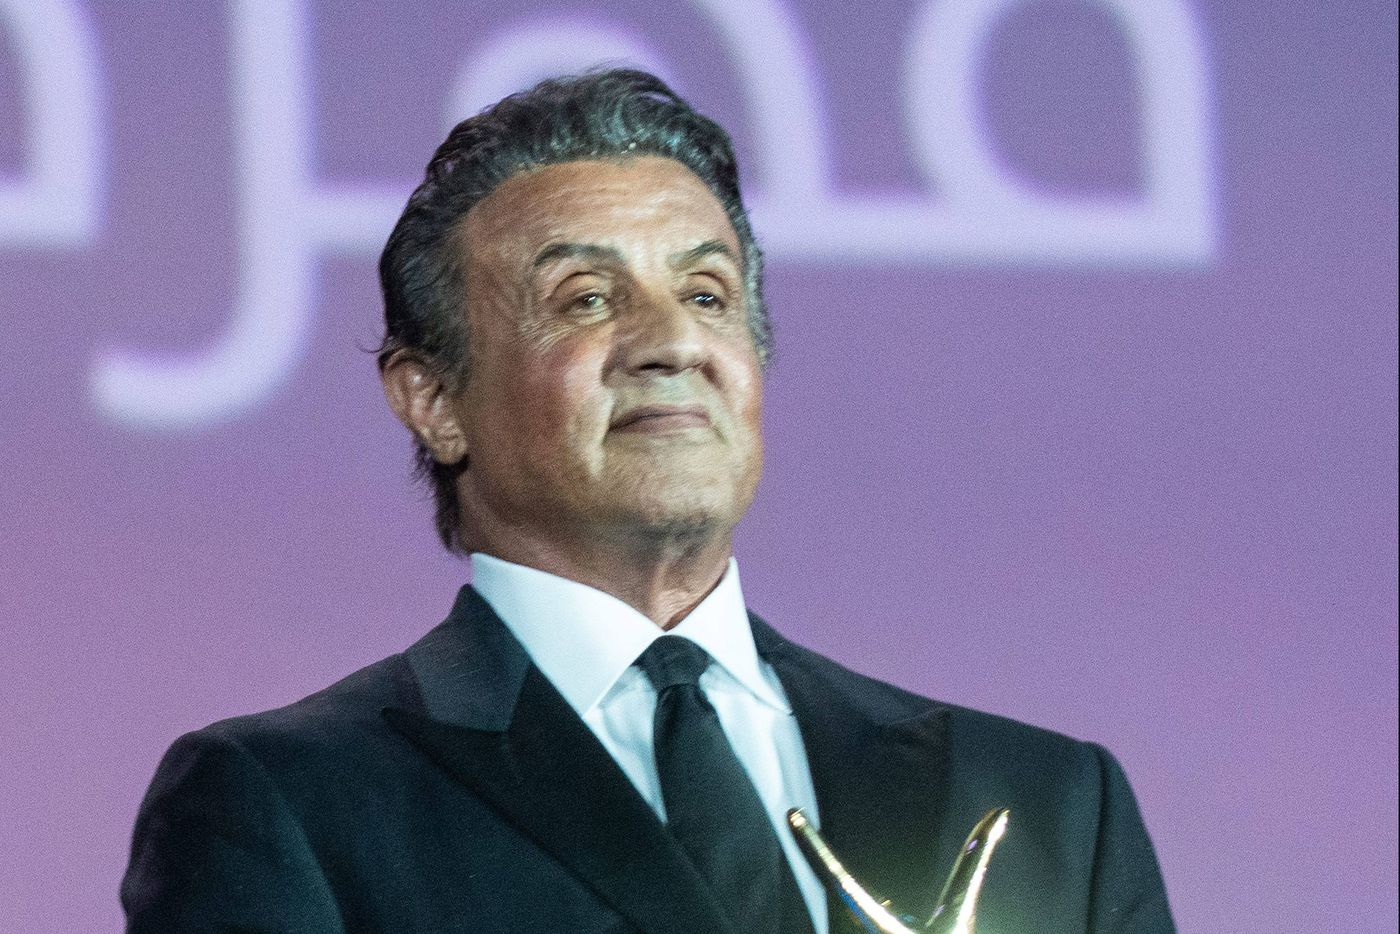 Sylvester Stallone won't face sexual assault charges